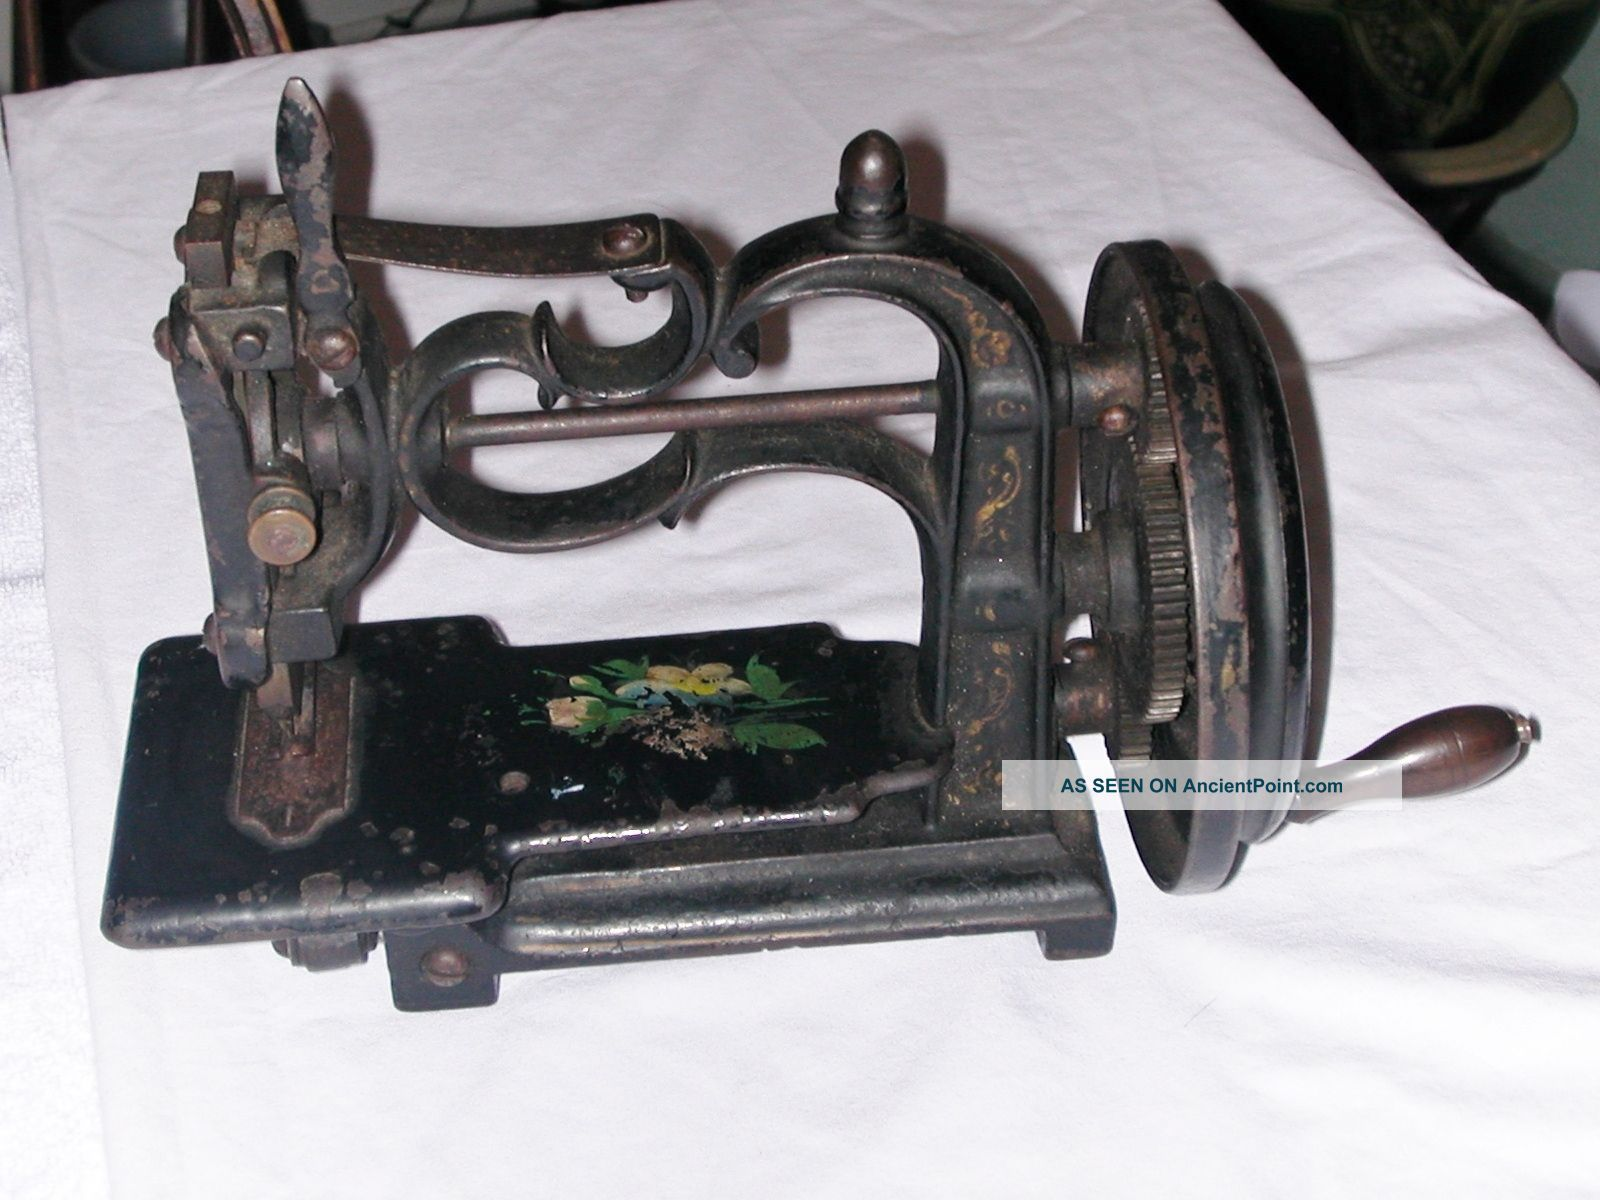 Antique Cast Iron Hand Crank Sewing Machine England Style Sewing Machines photo